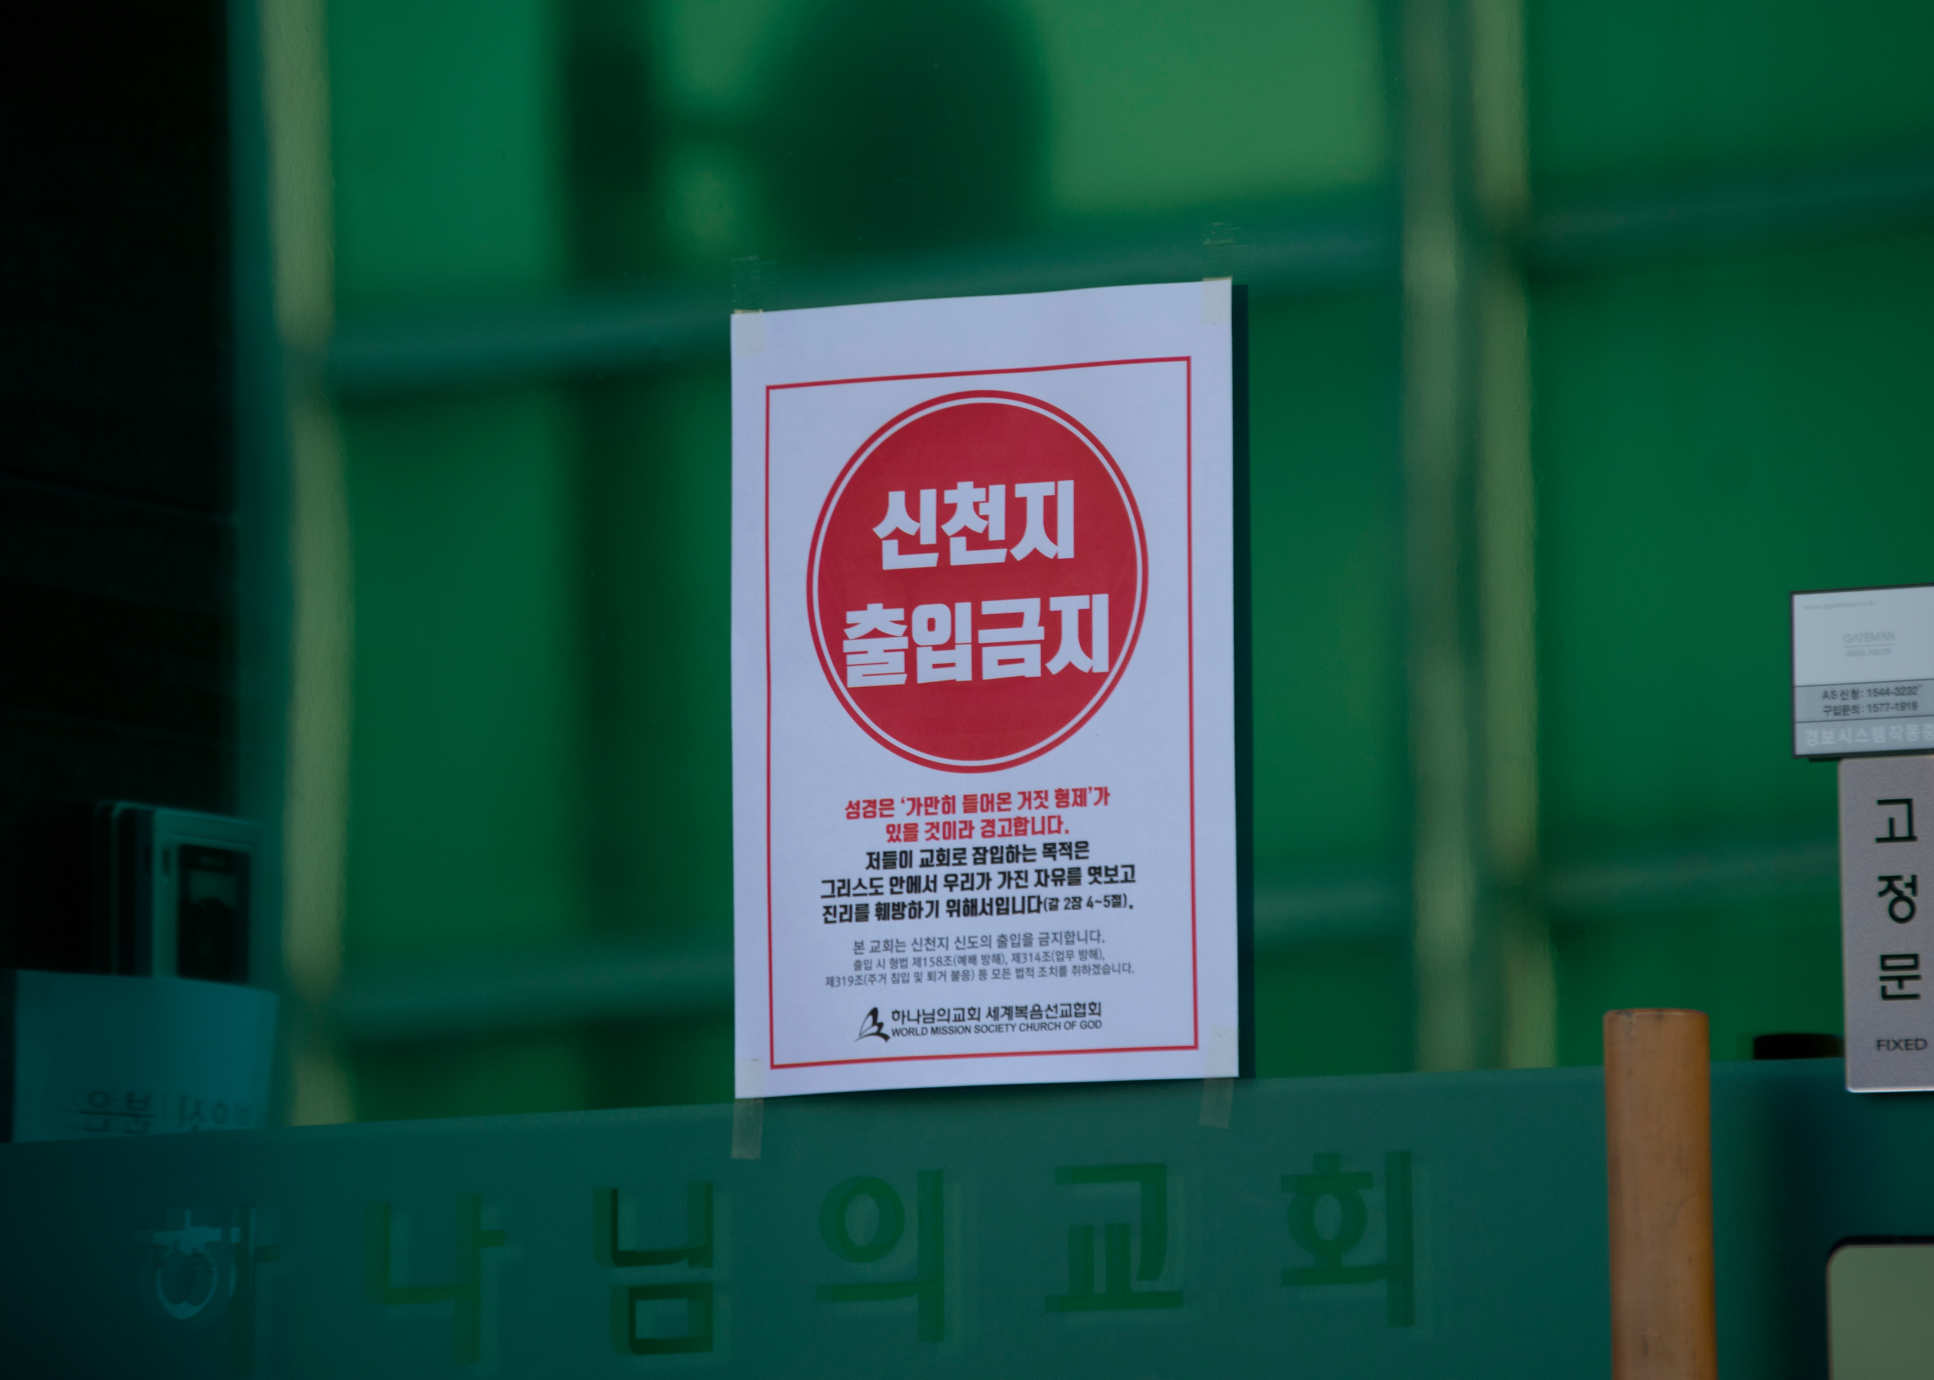 This sign at a Seoul church is telling members of the Shincheonji Church that they are not permitted entry.